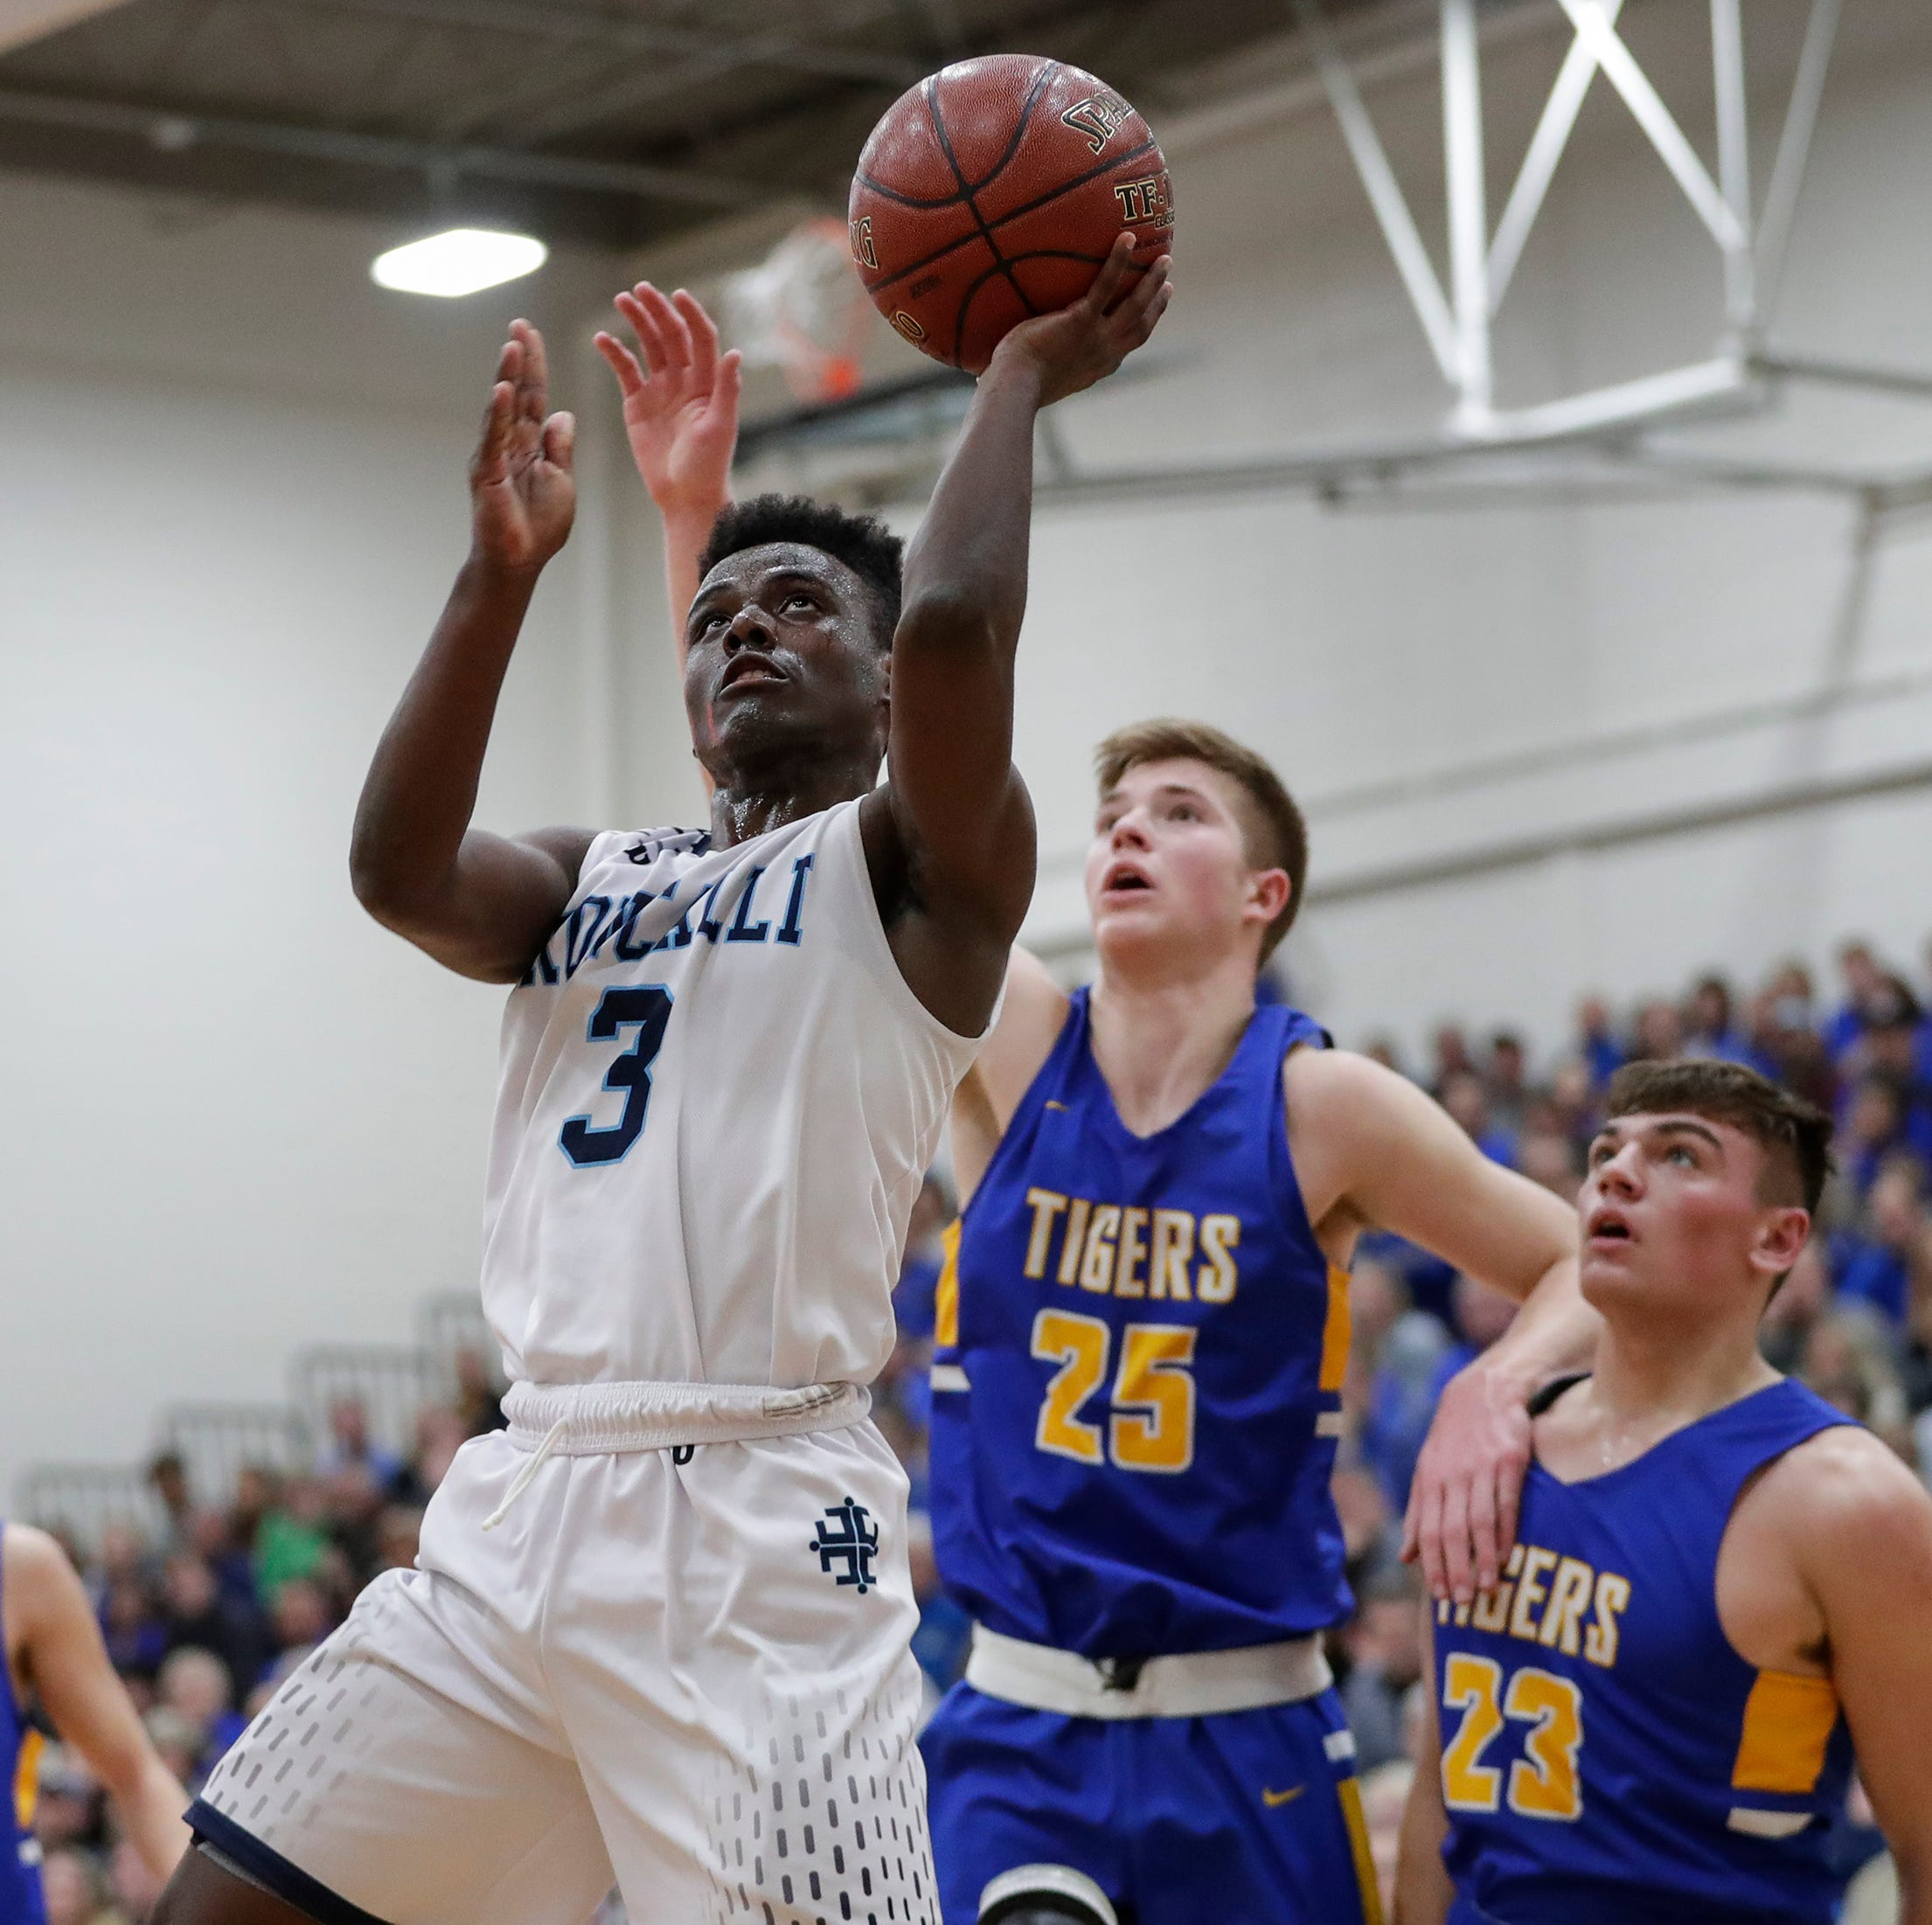 WIAA boys basketball: Roncalli tops Howards Grove, pushes state-best winning streak to 33